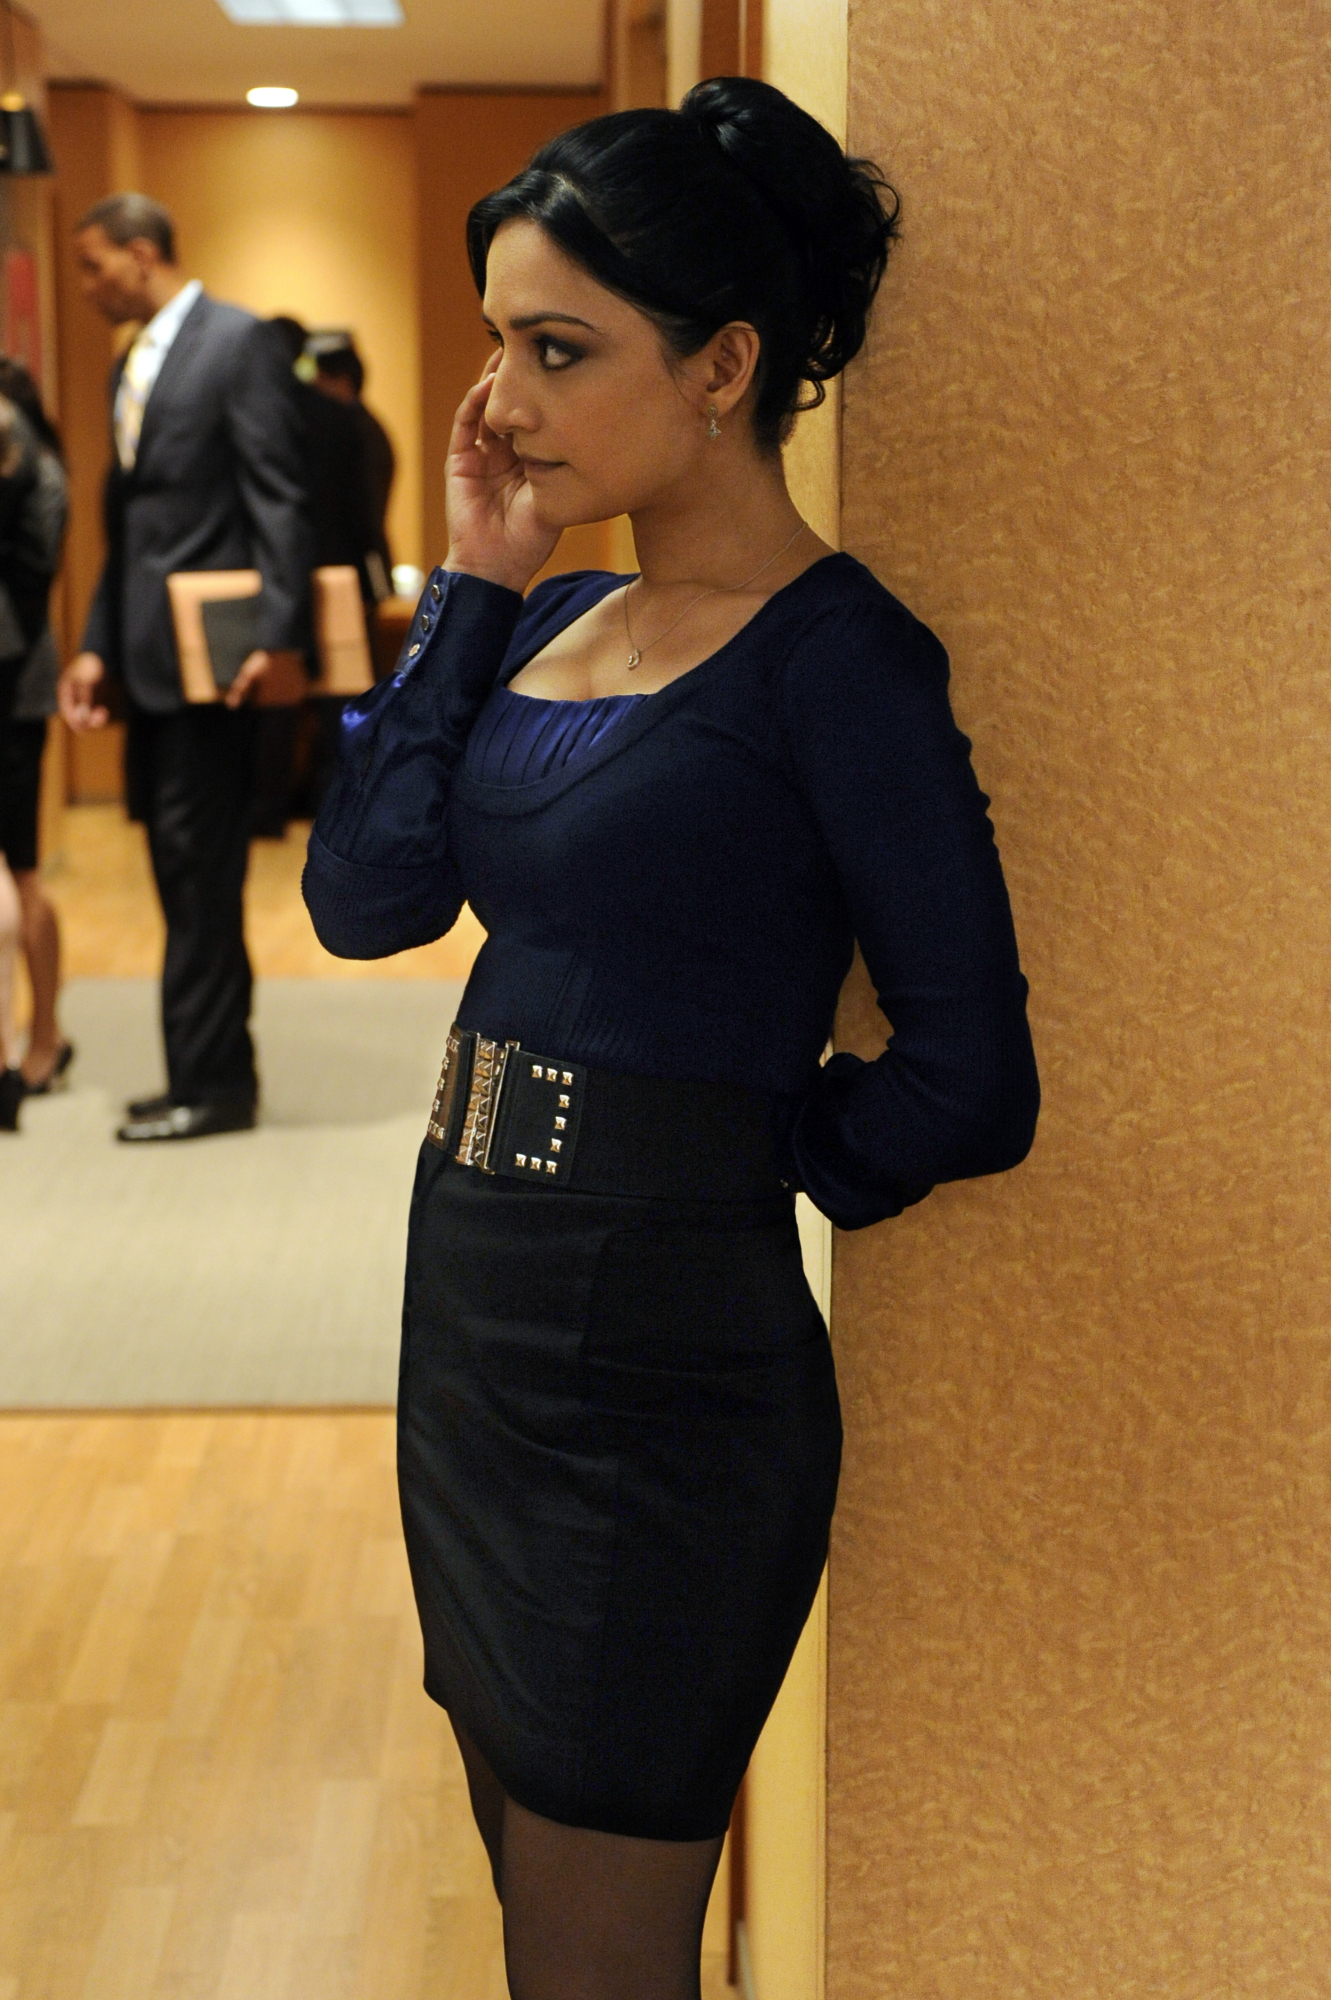 Kalinda Tries to Stay Focused